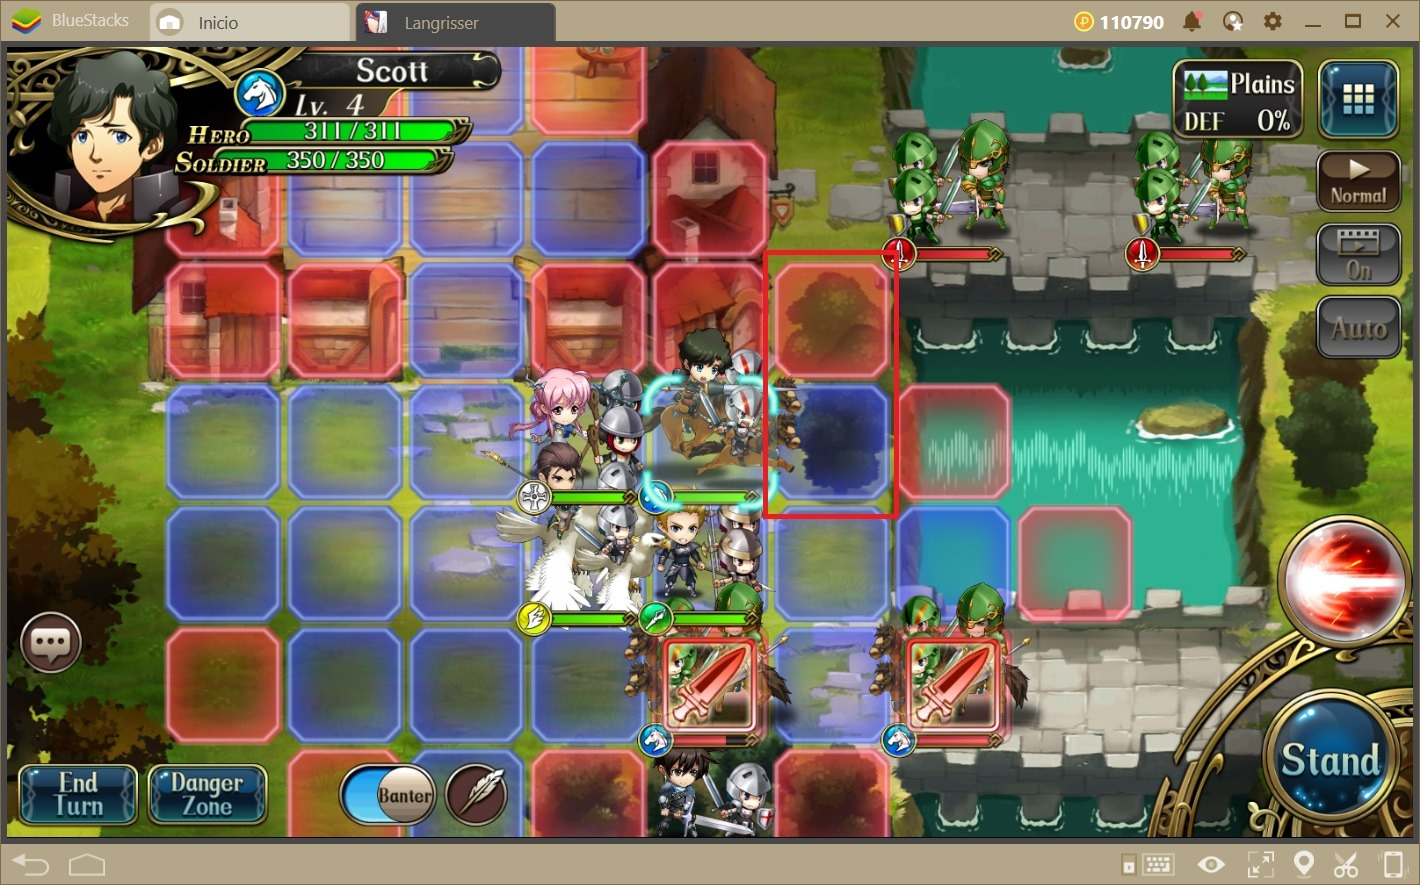 Combat Fundamentals of Langrisser: Learn all about the Priority and Terrain systems